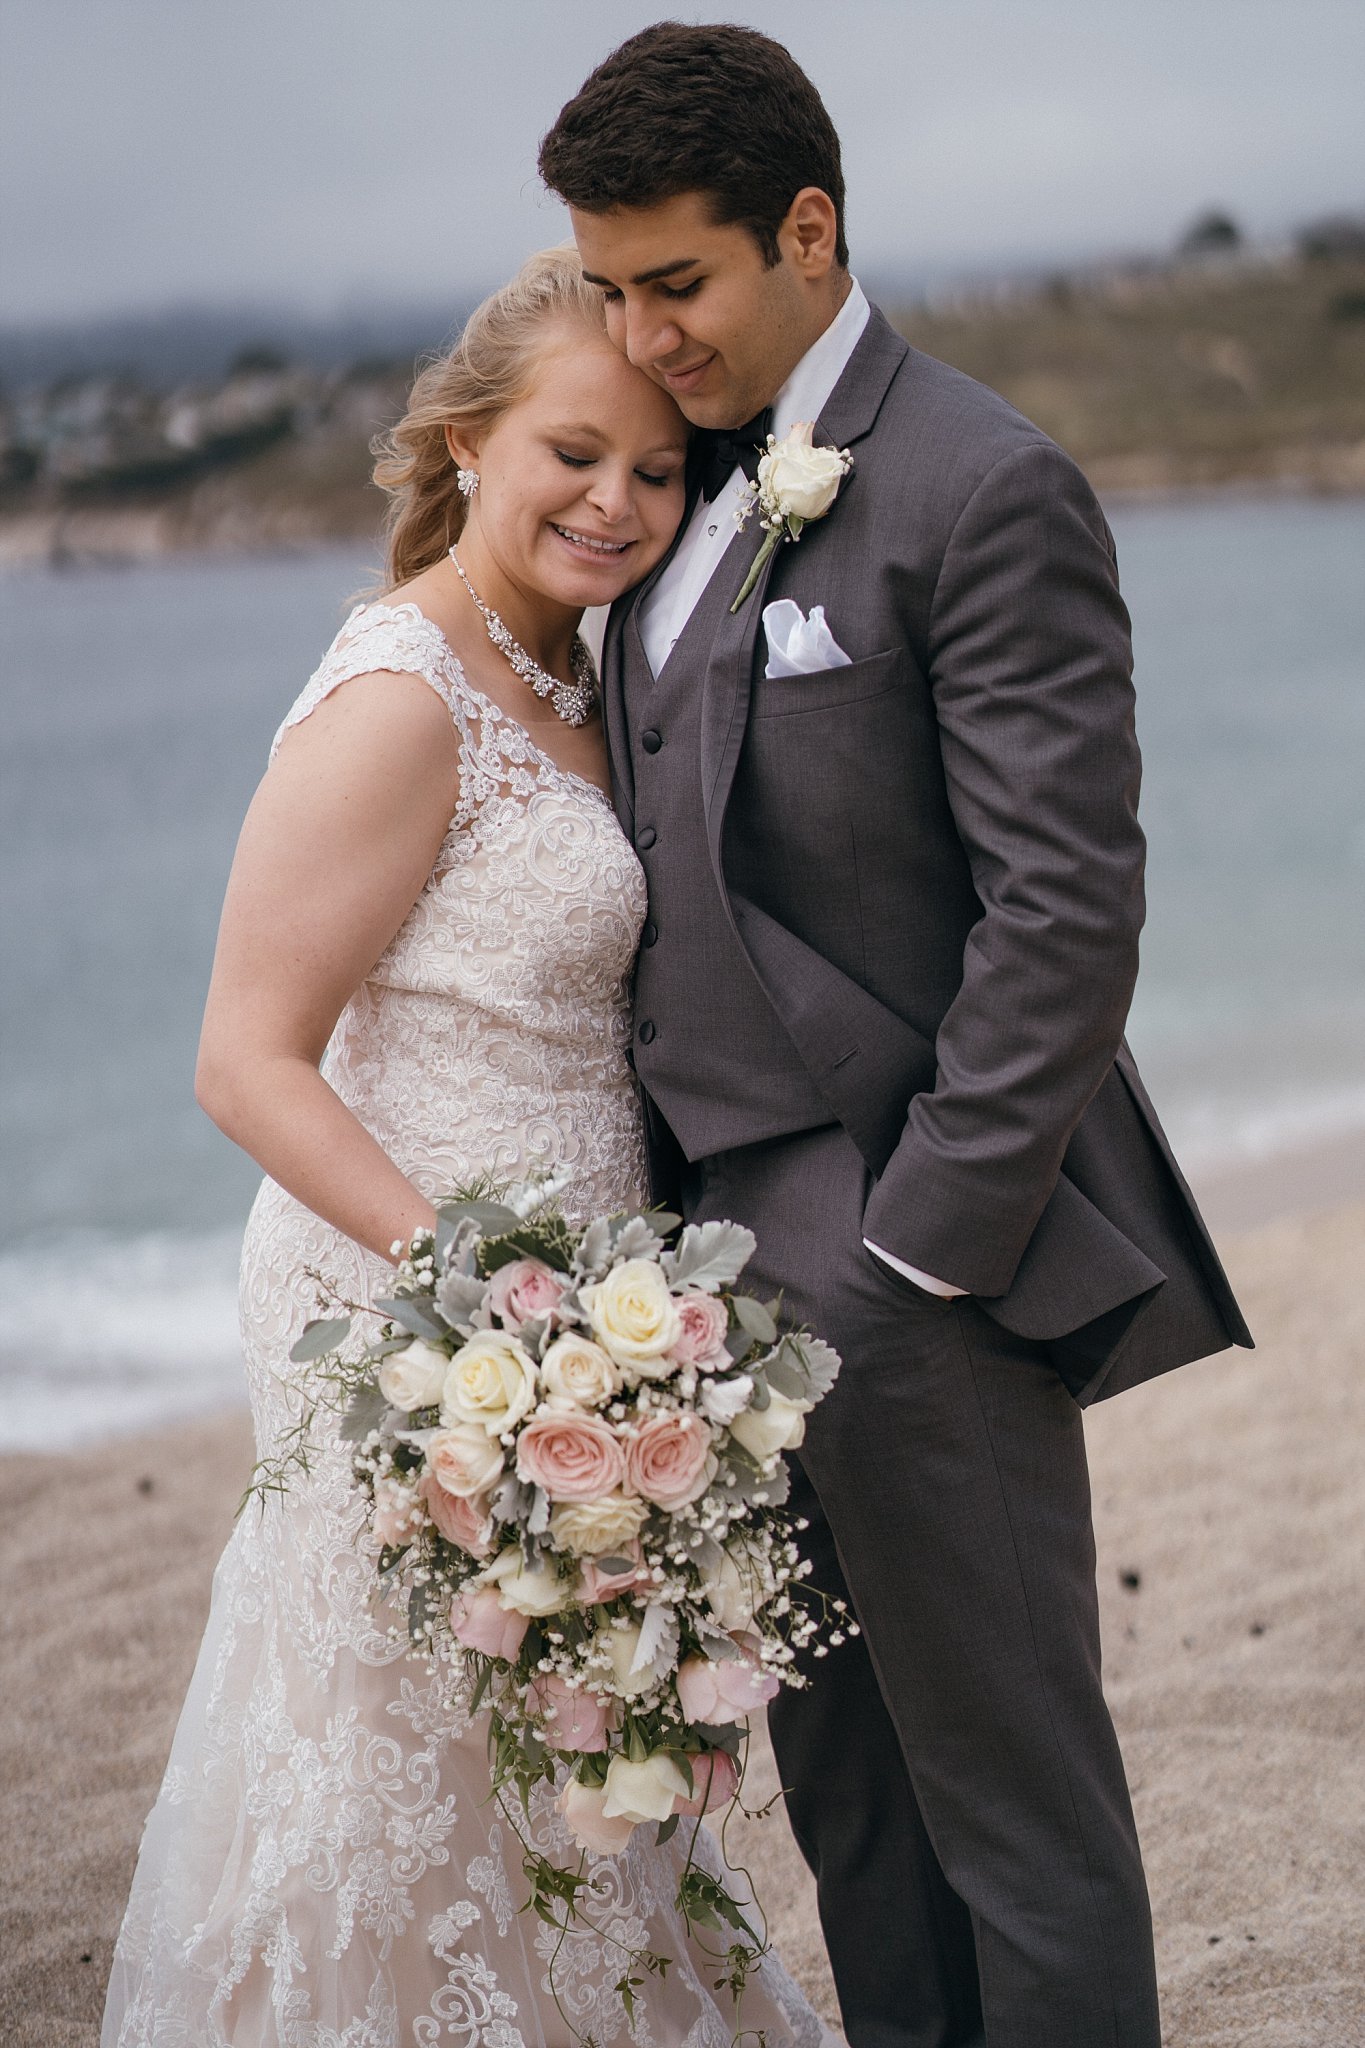 monterey-wedding-photographer-pebble-beach-church-in-the-forest-wedding-bride-groom-morgan-anthony_0034.jpg